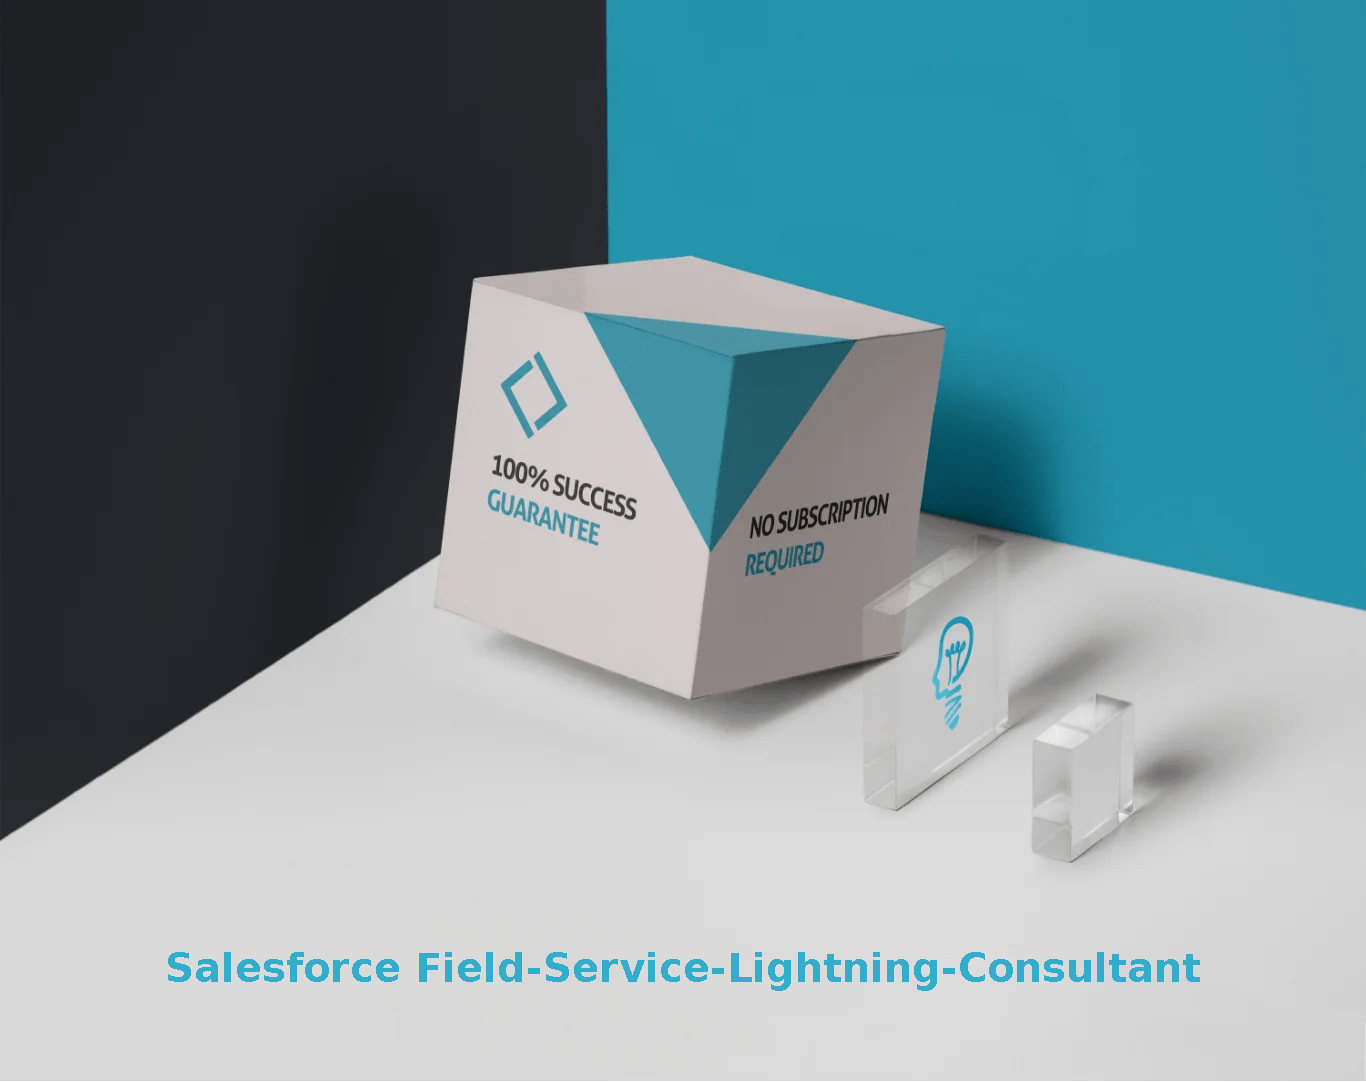 Salesforce Field-Service-Lightning-Consultant Exams